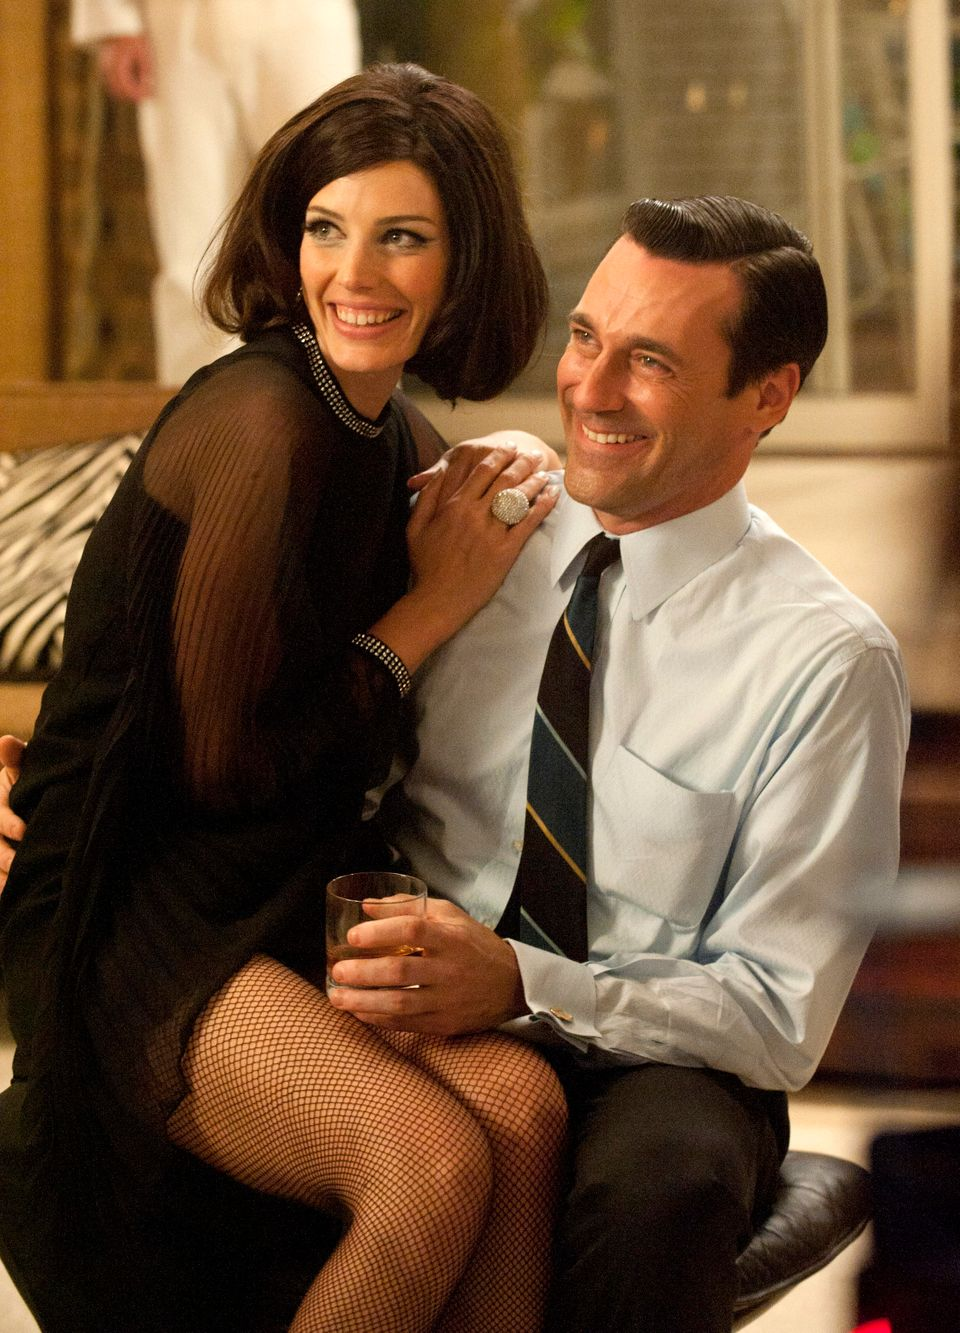 Anyone who's watched <em>Mad Men</em> knows that there's no shortage of office flings, affairs, hook-ups and marriages. Take